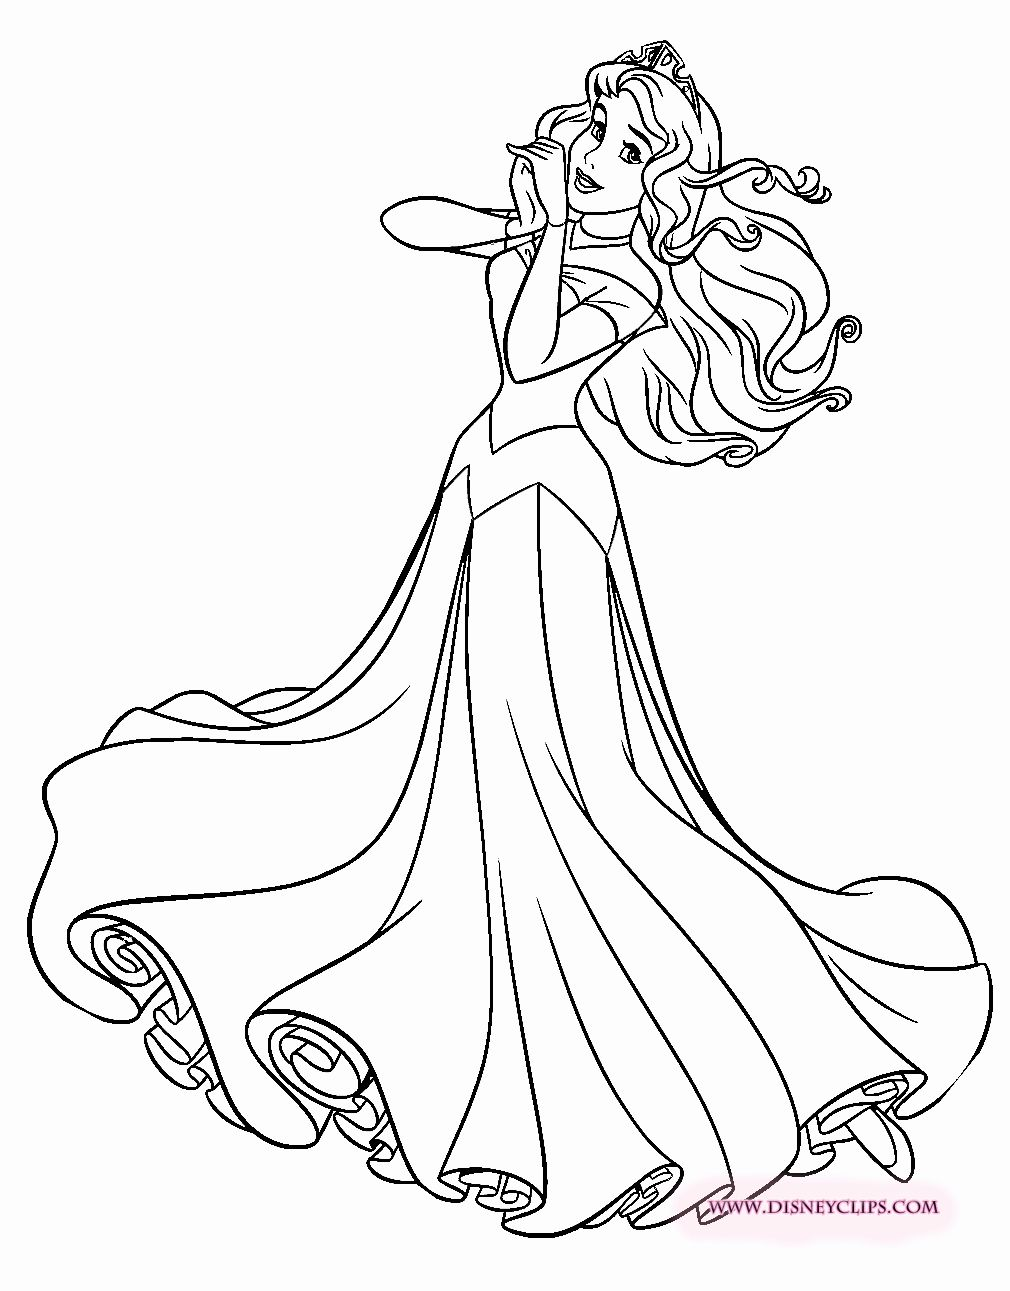 32 Sleeping Beauty Coloring Page In 2020 Sleeping Beauty